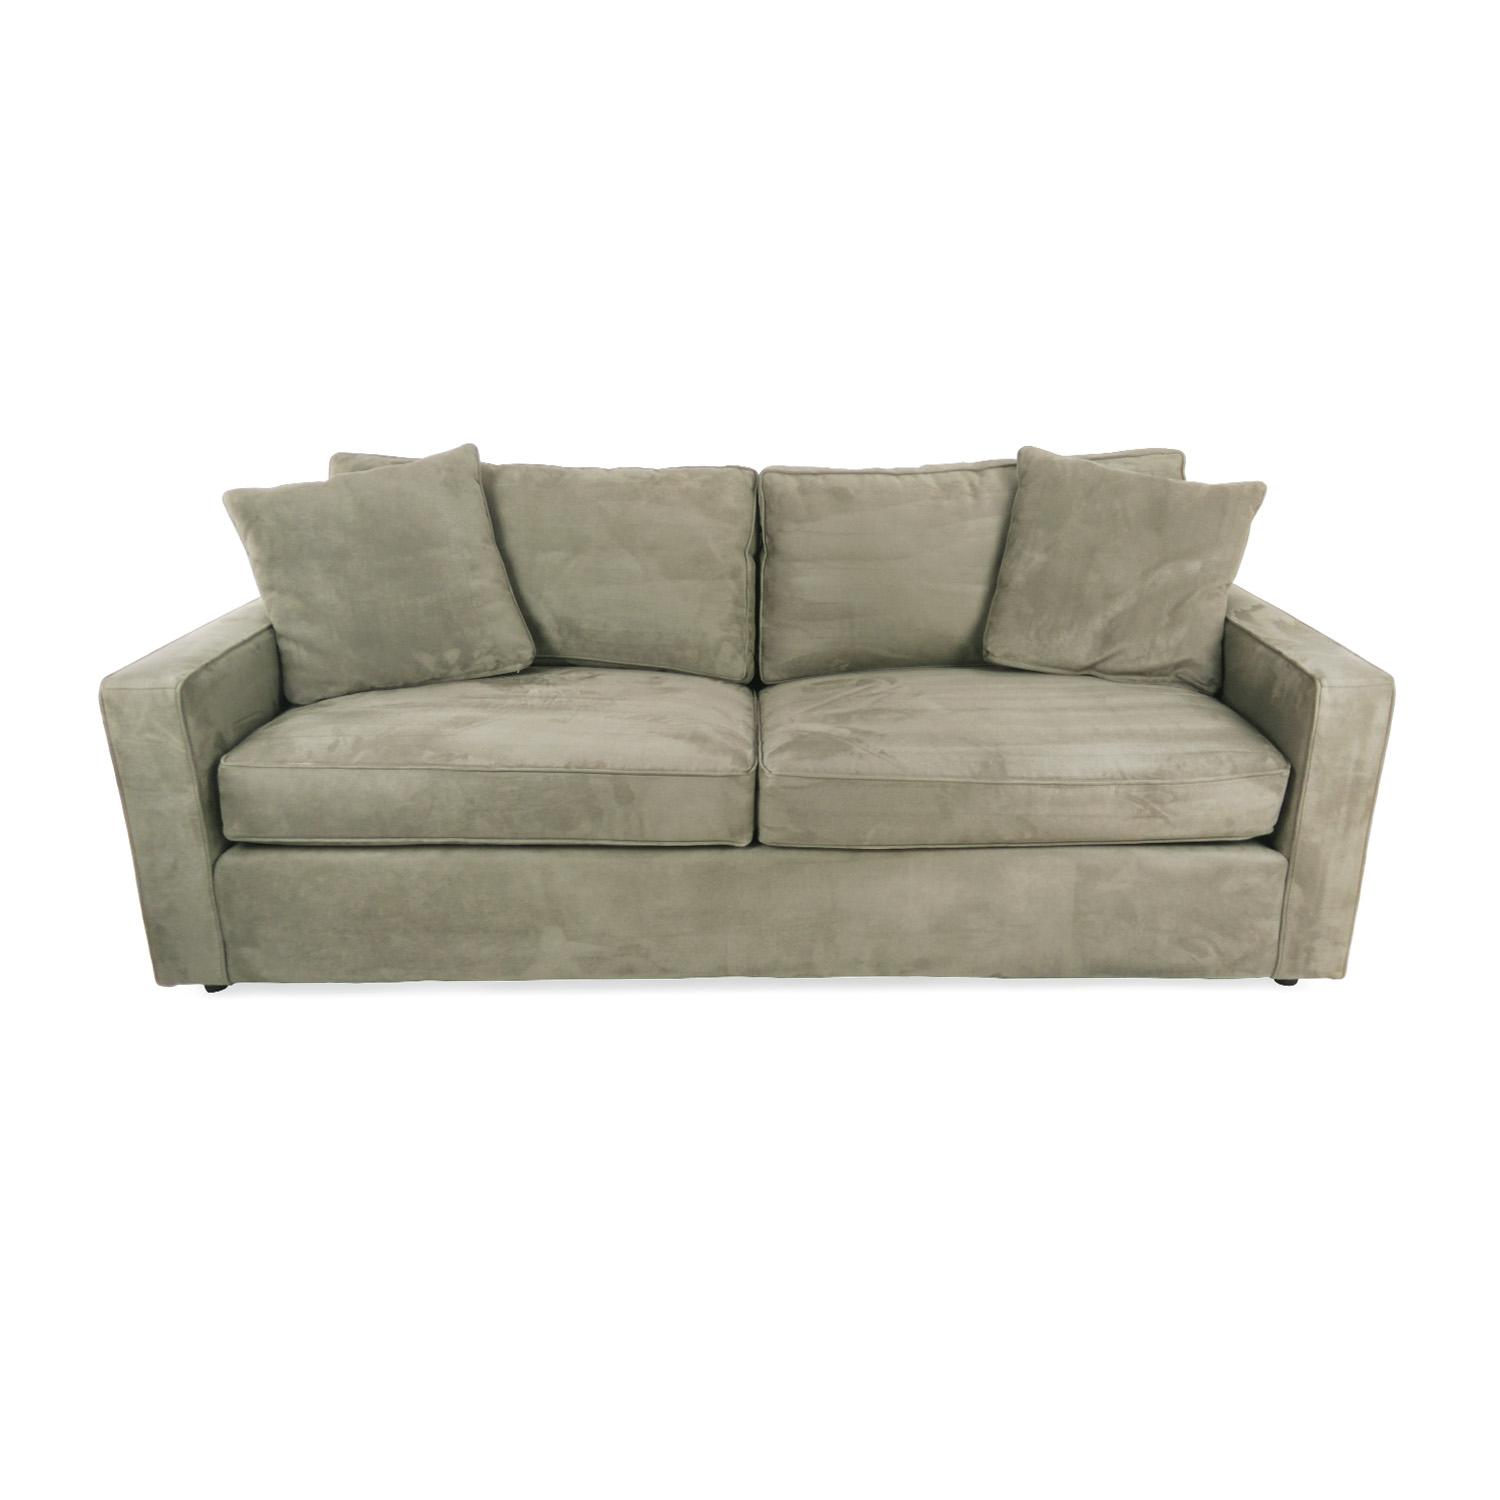 70 Off Room Board York Sofa Sofas